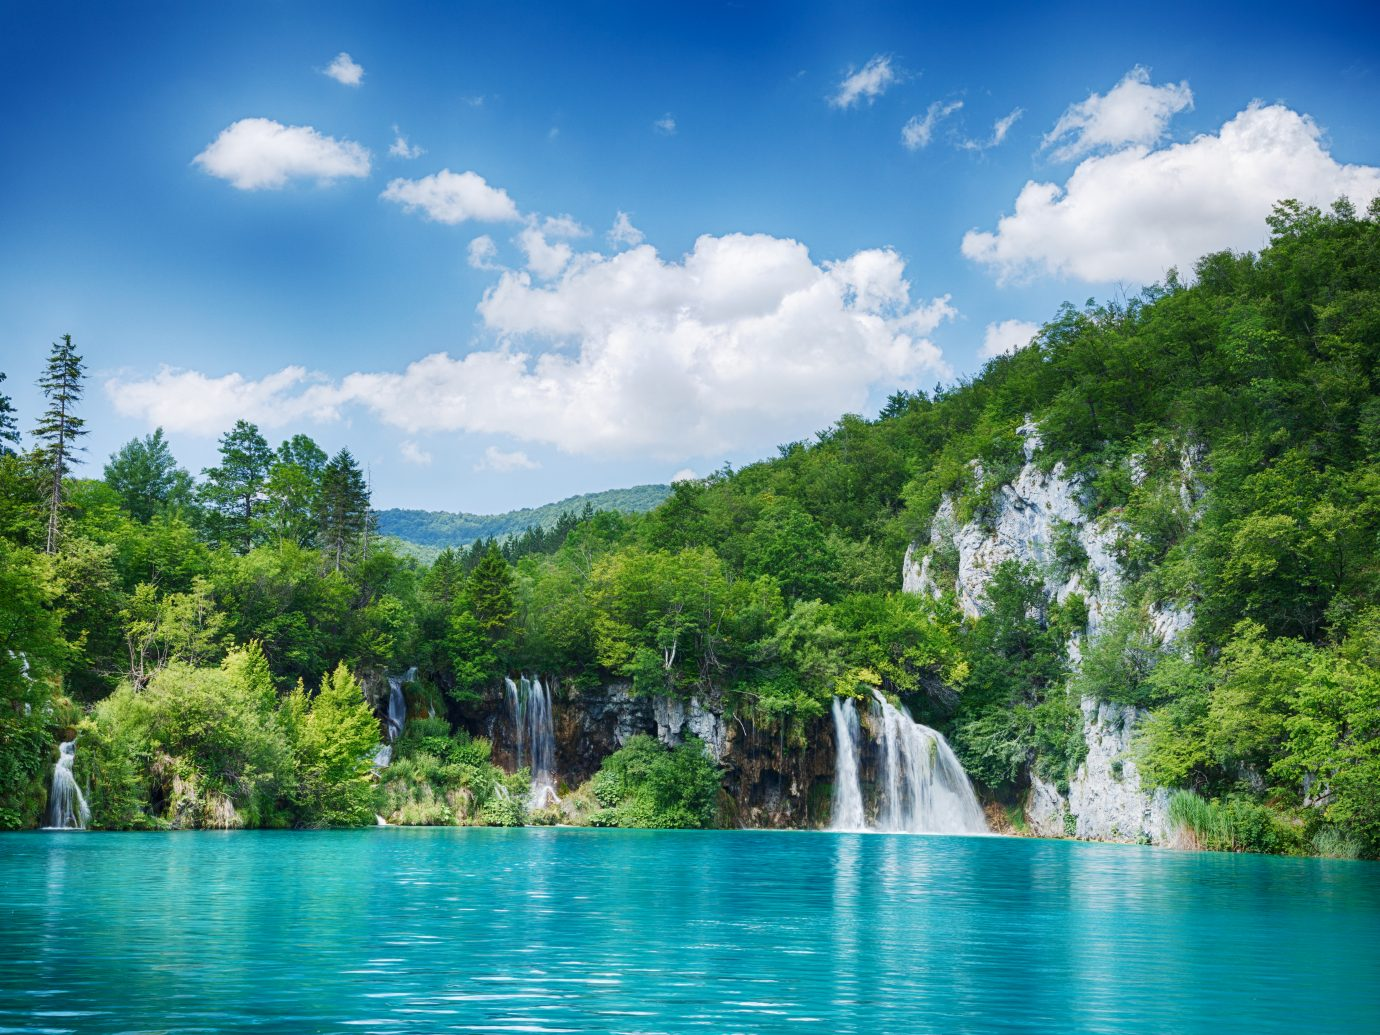 Idyllic scene from the Plitvice Lakes National Park